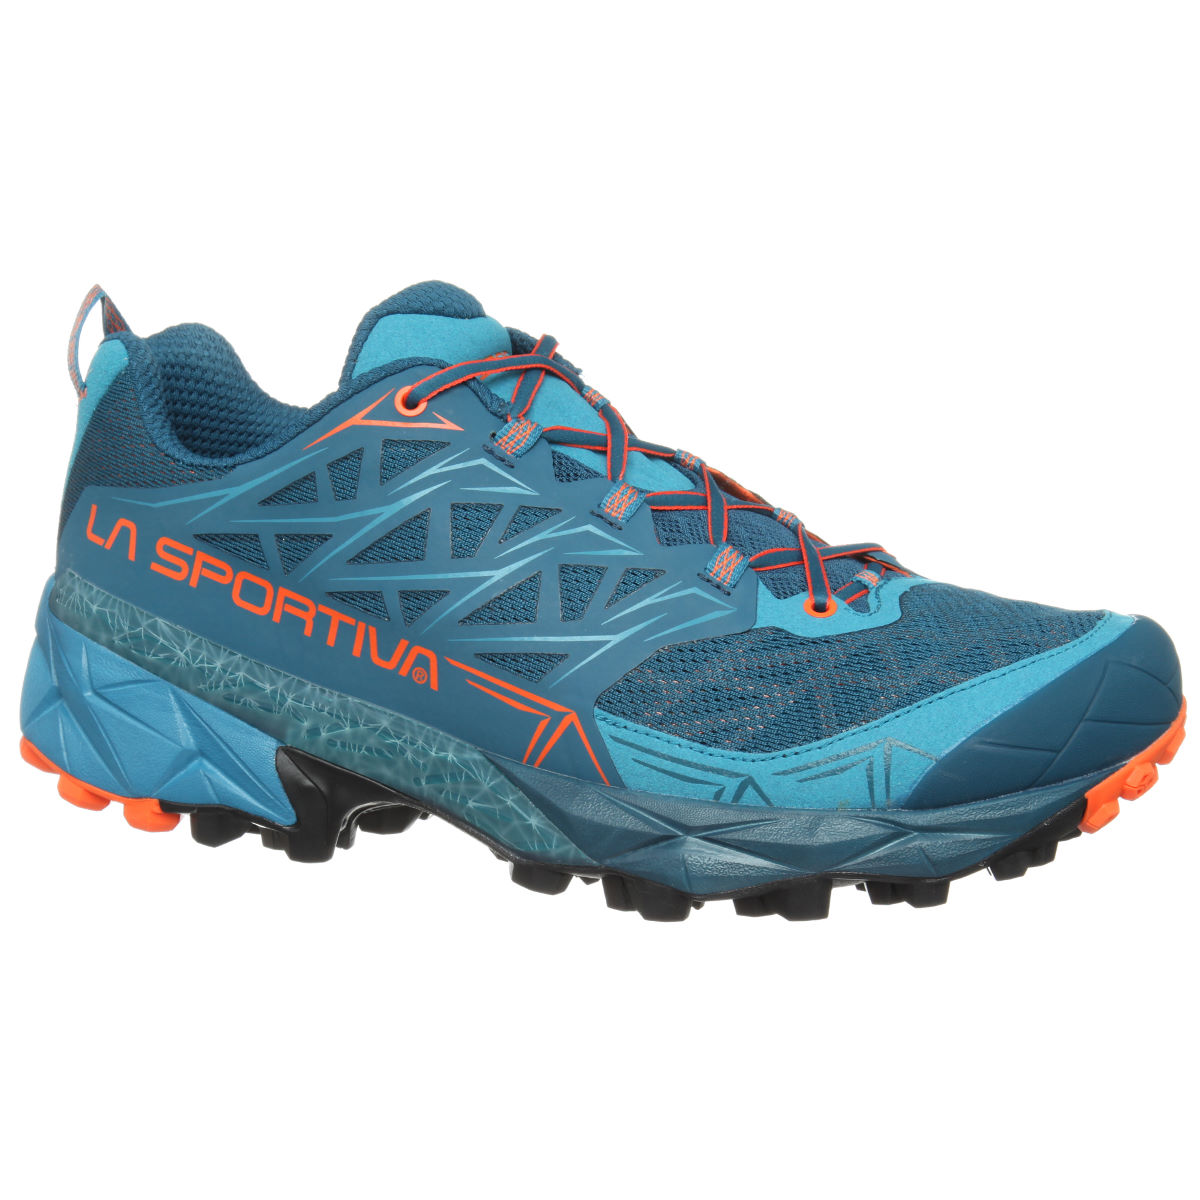 Chaussures La Sportiva Akyra - 11 UK Blue/Orange